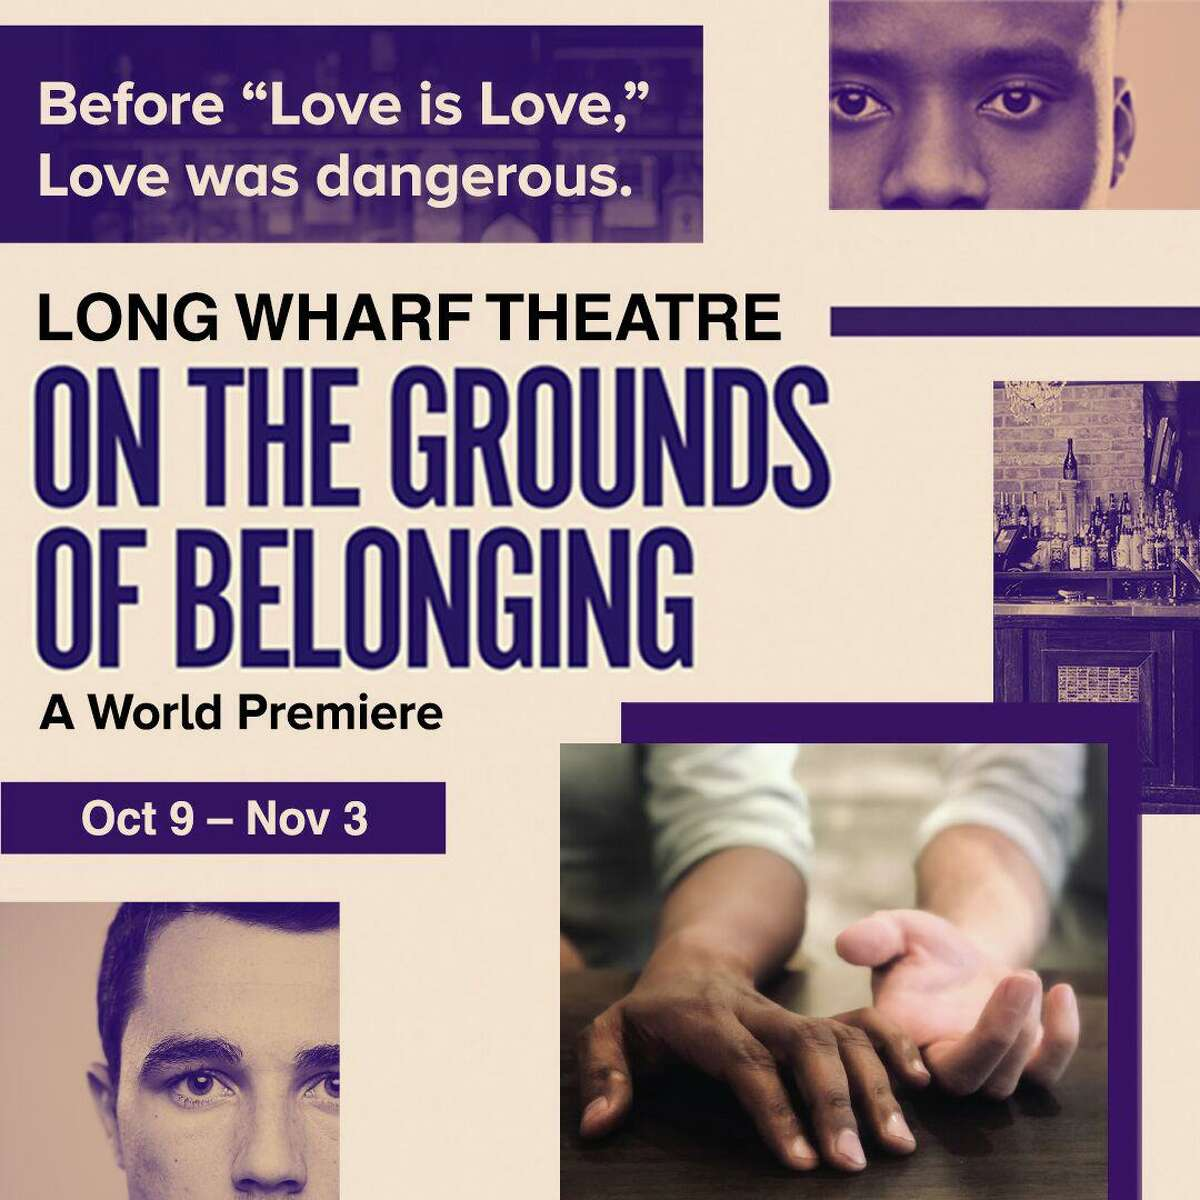 """""""On the Grounds of Belonging"""" will be onstage at Long Wharf Theatre, Wednesday, Oct. 9, through Sunday, Nov. 3."""